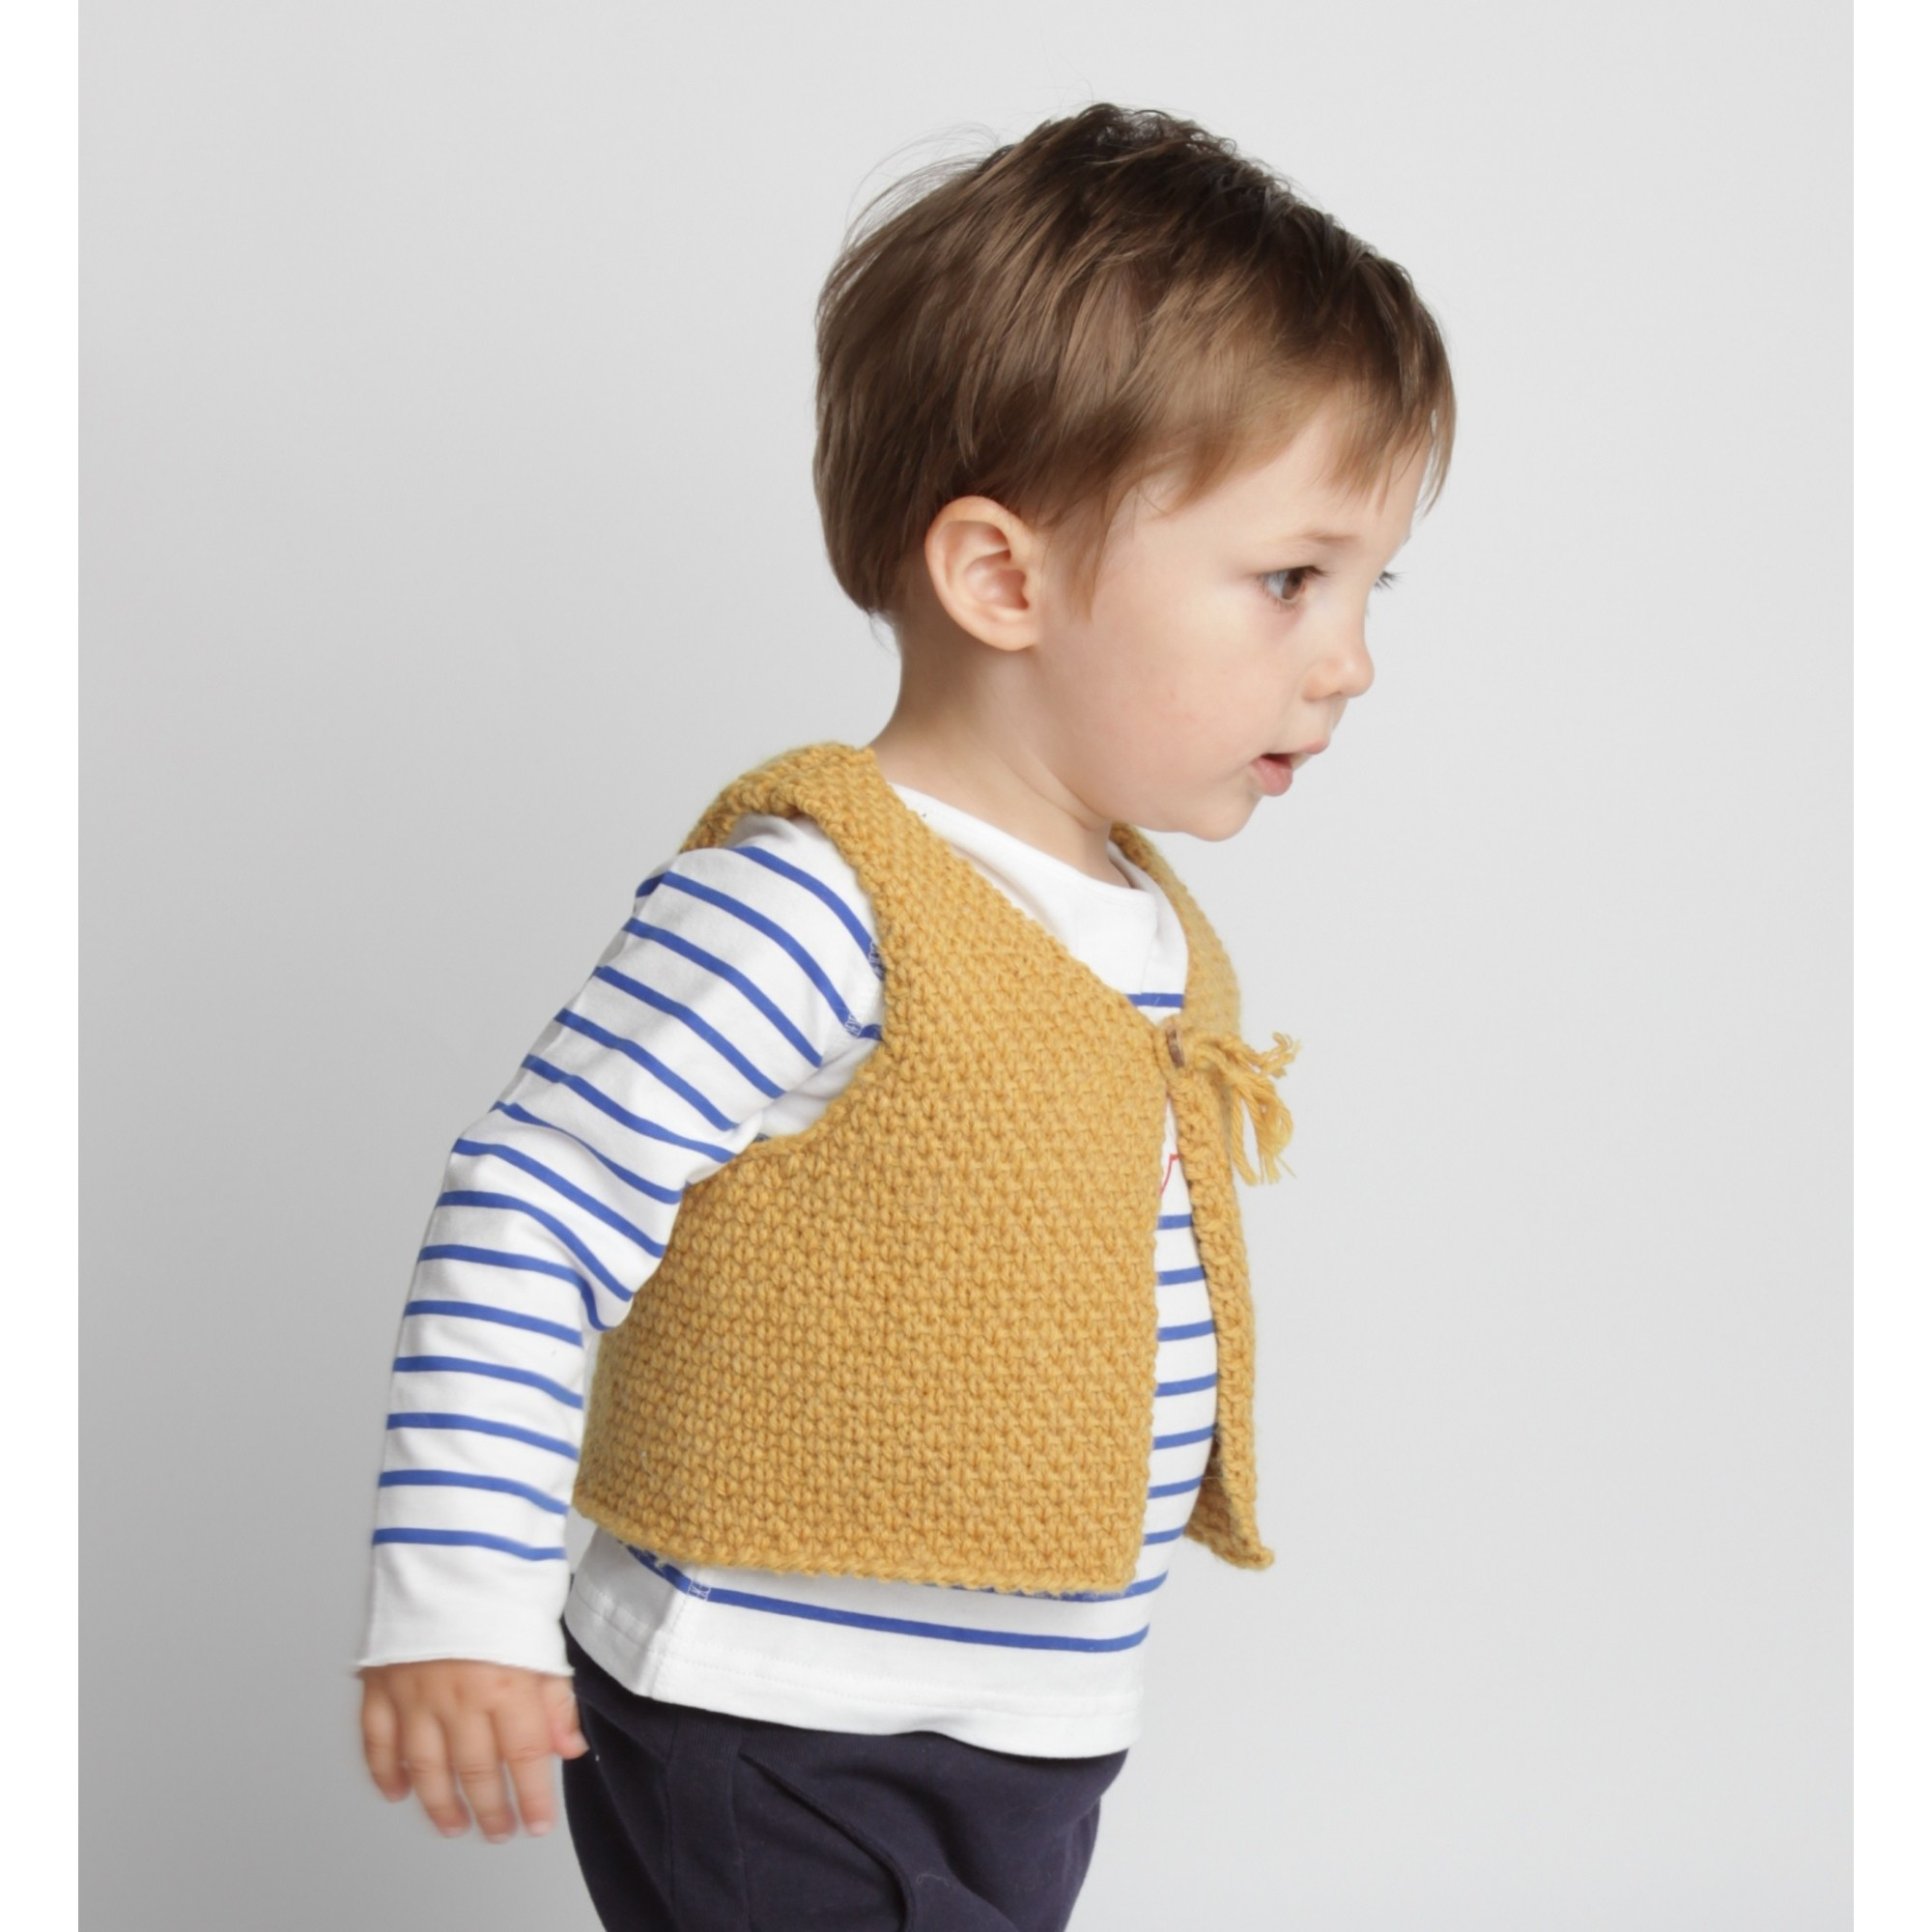 Long sleeves baby T-Shirt with blue stripes and red star 100% soft cotton with yellow sheperd vest made from wool and alpaca